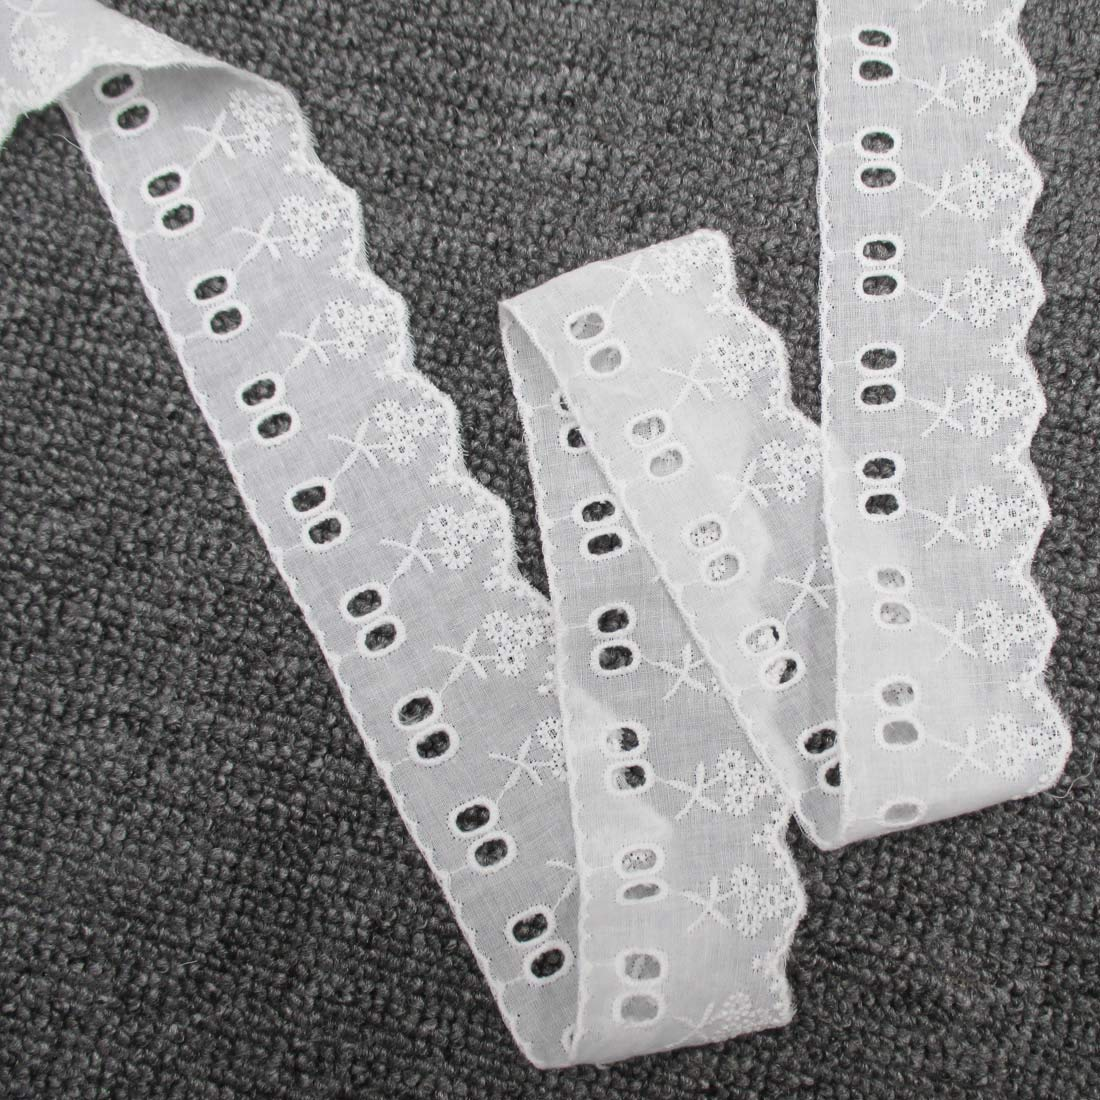 5 Yards 2 Inches Wide Cotton Lace Trims Patterned Embroidered Scalloped Lace with Eyeletteds